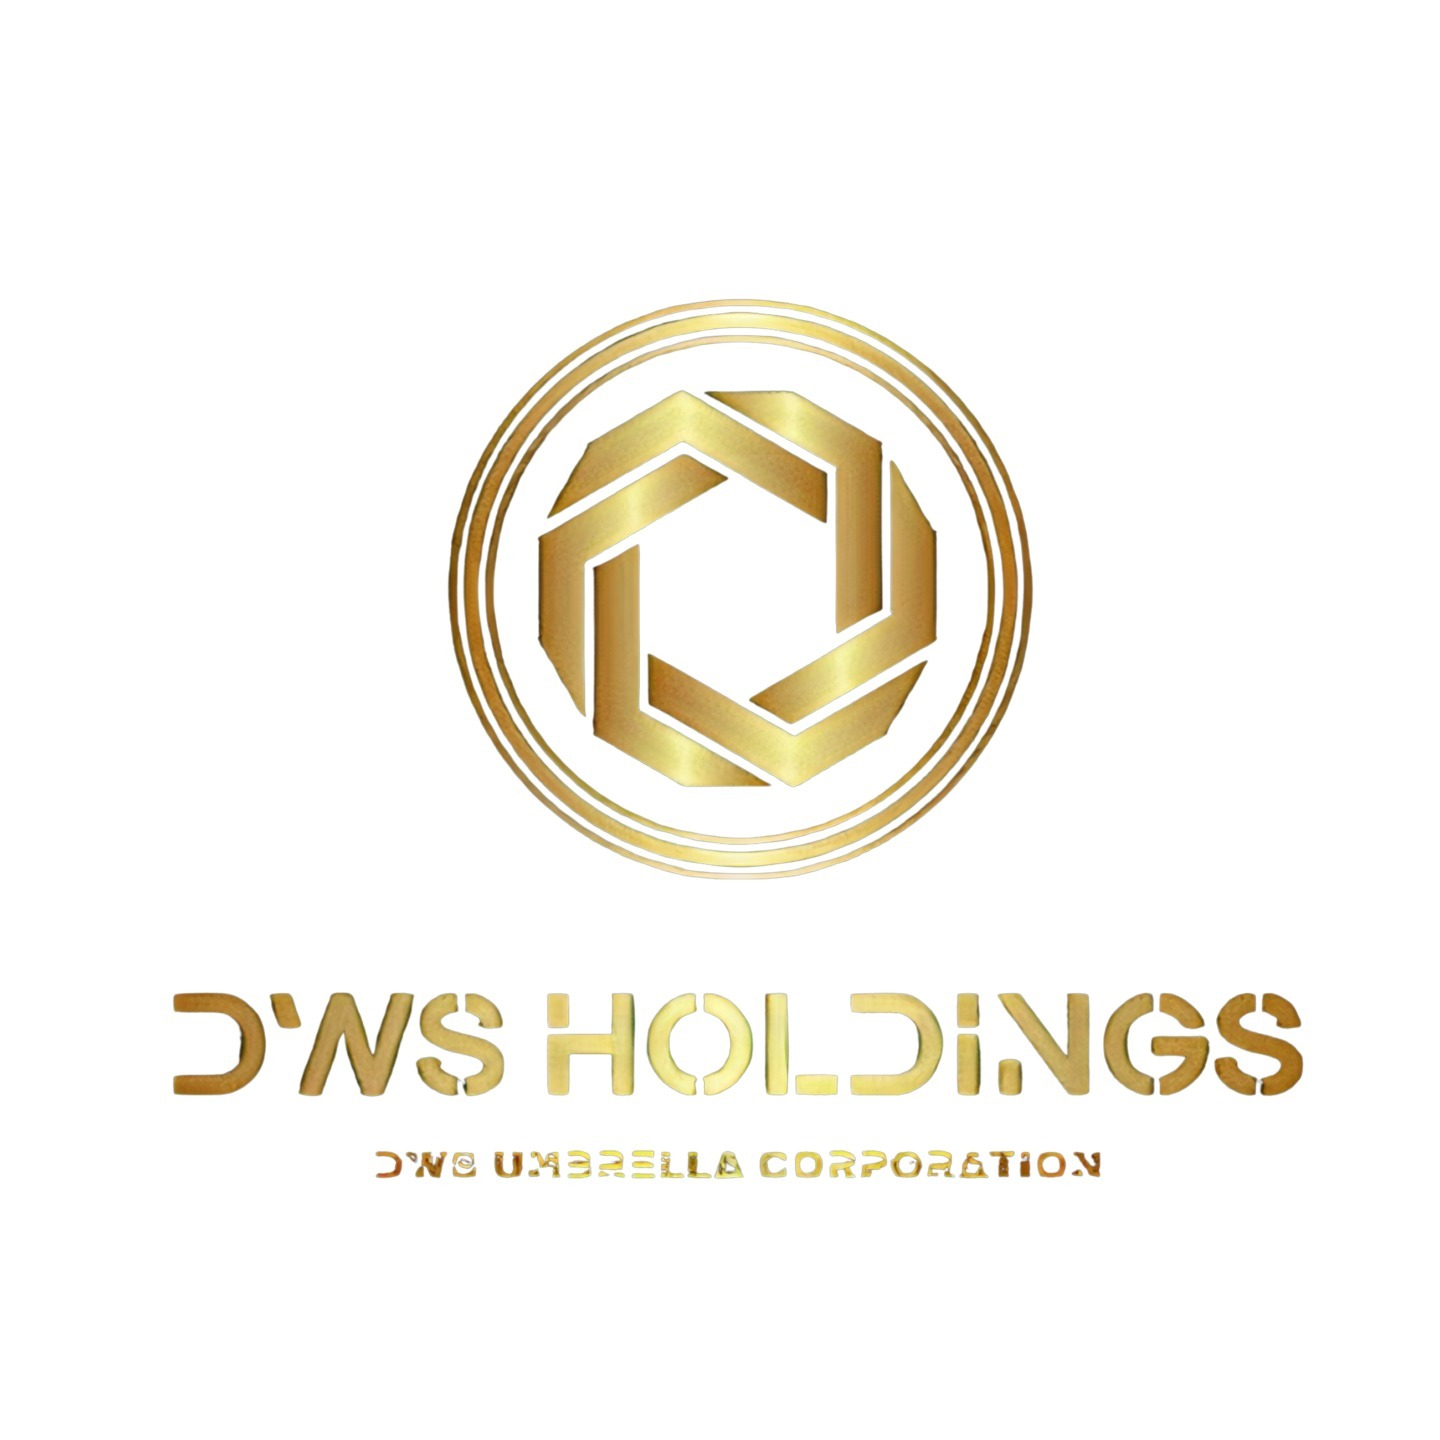 DWS Offshore Holdings (@dwsholdings) Cover Image